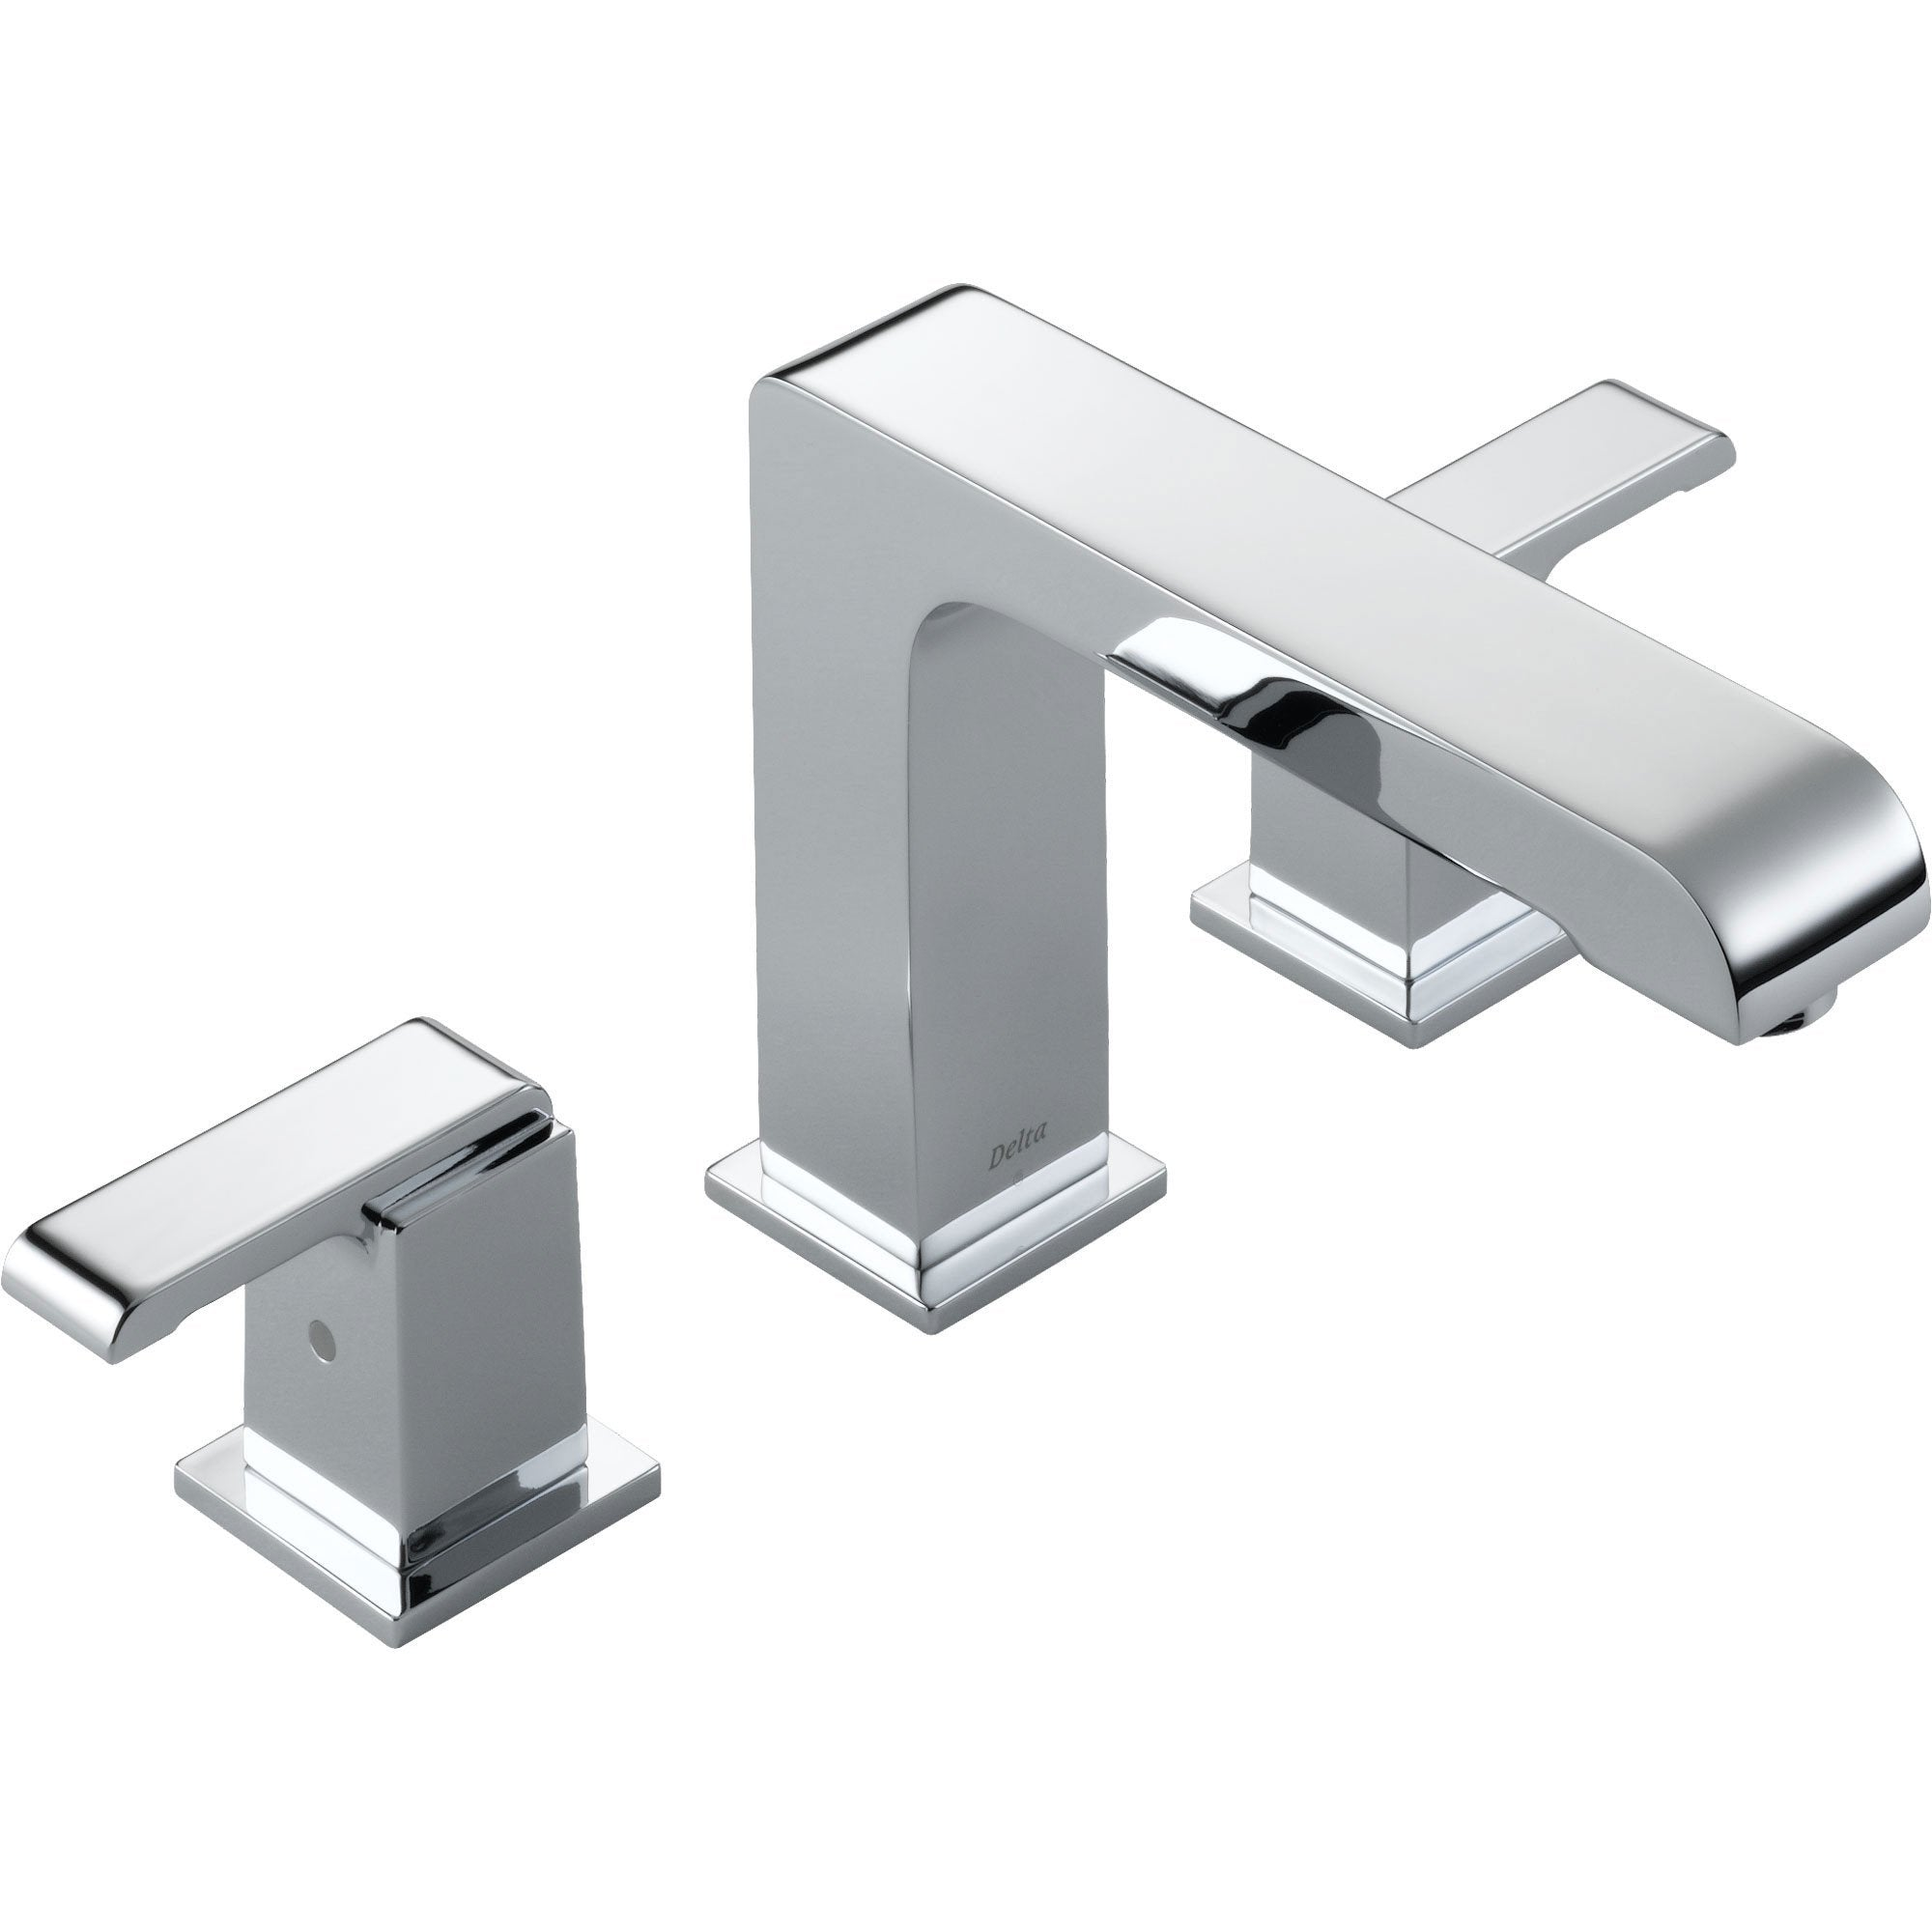 Delta Arzo Modern Square Widespread Chrome Roman Tub Filler Faucet Trim 352501